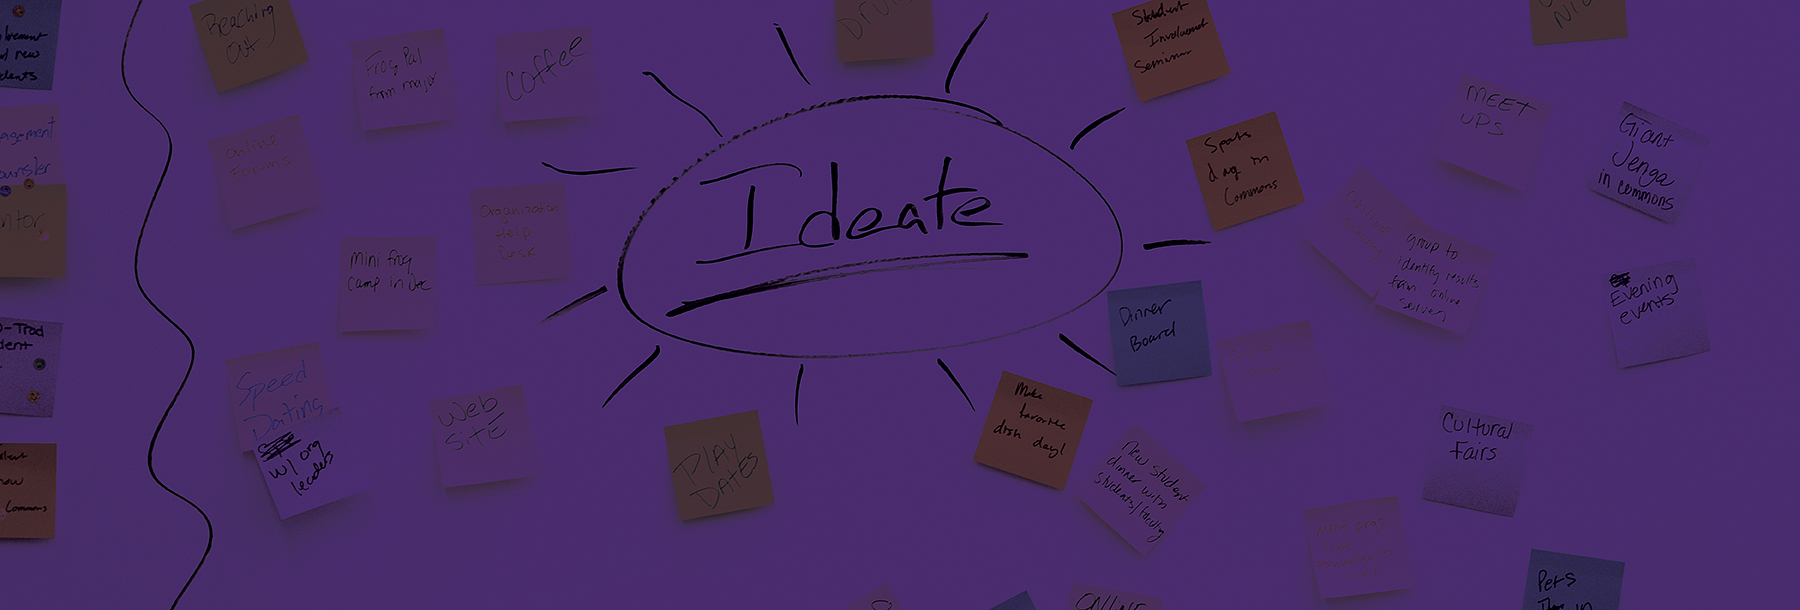 Section Image: Ideate Word Web